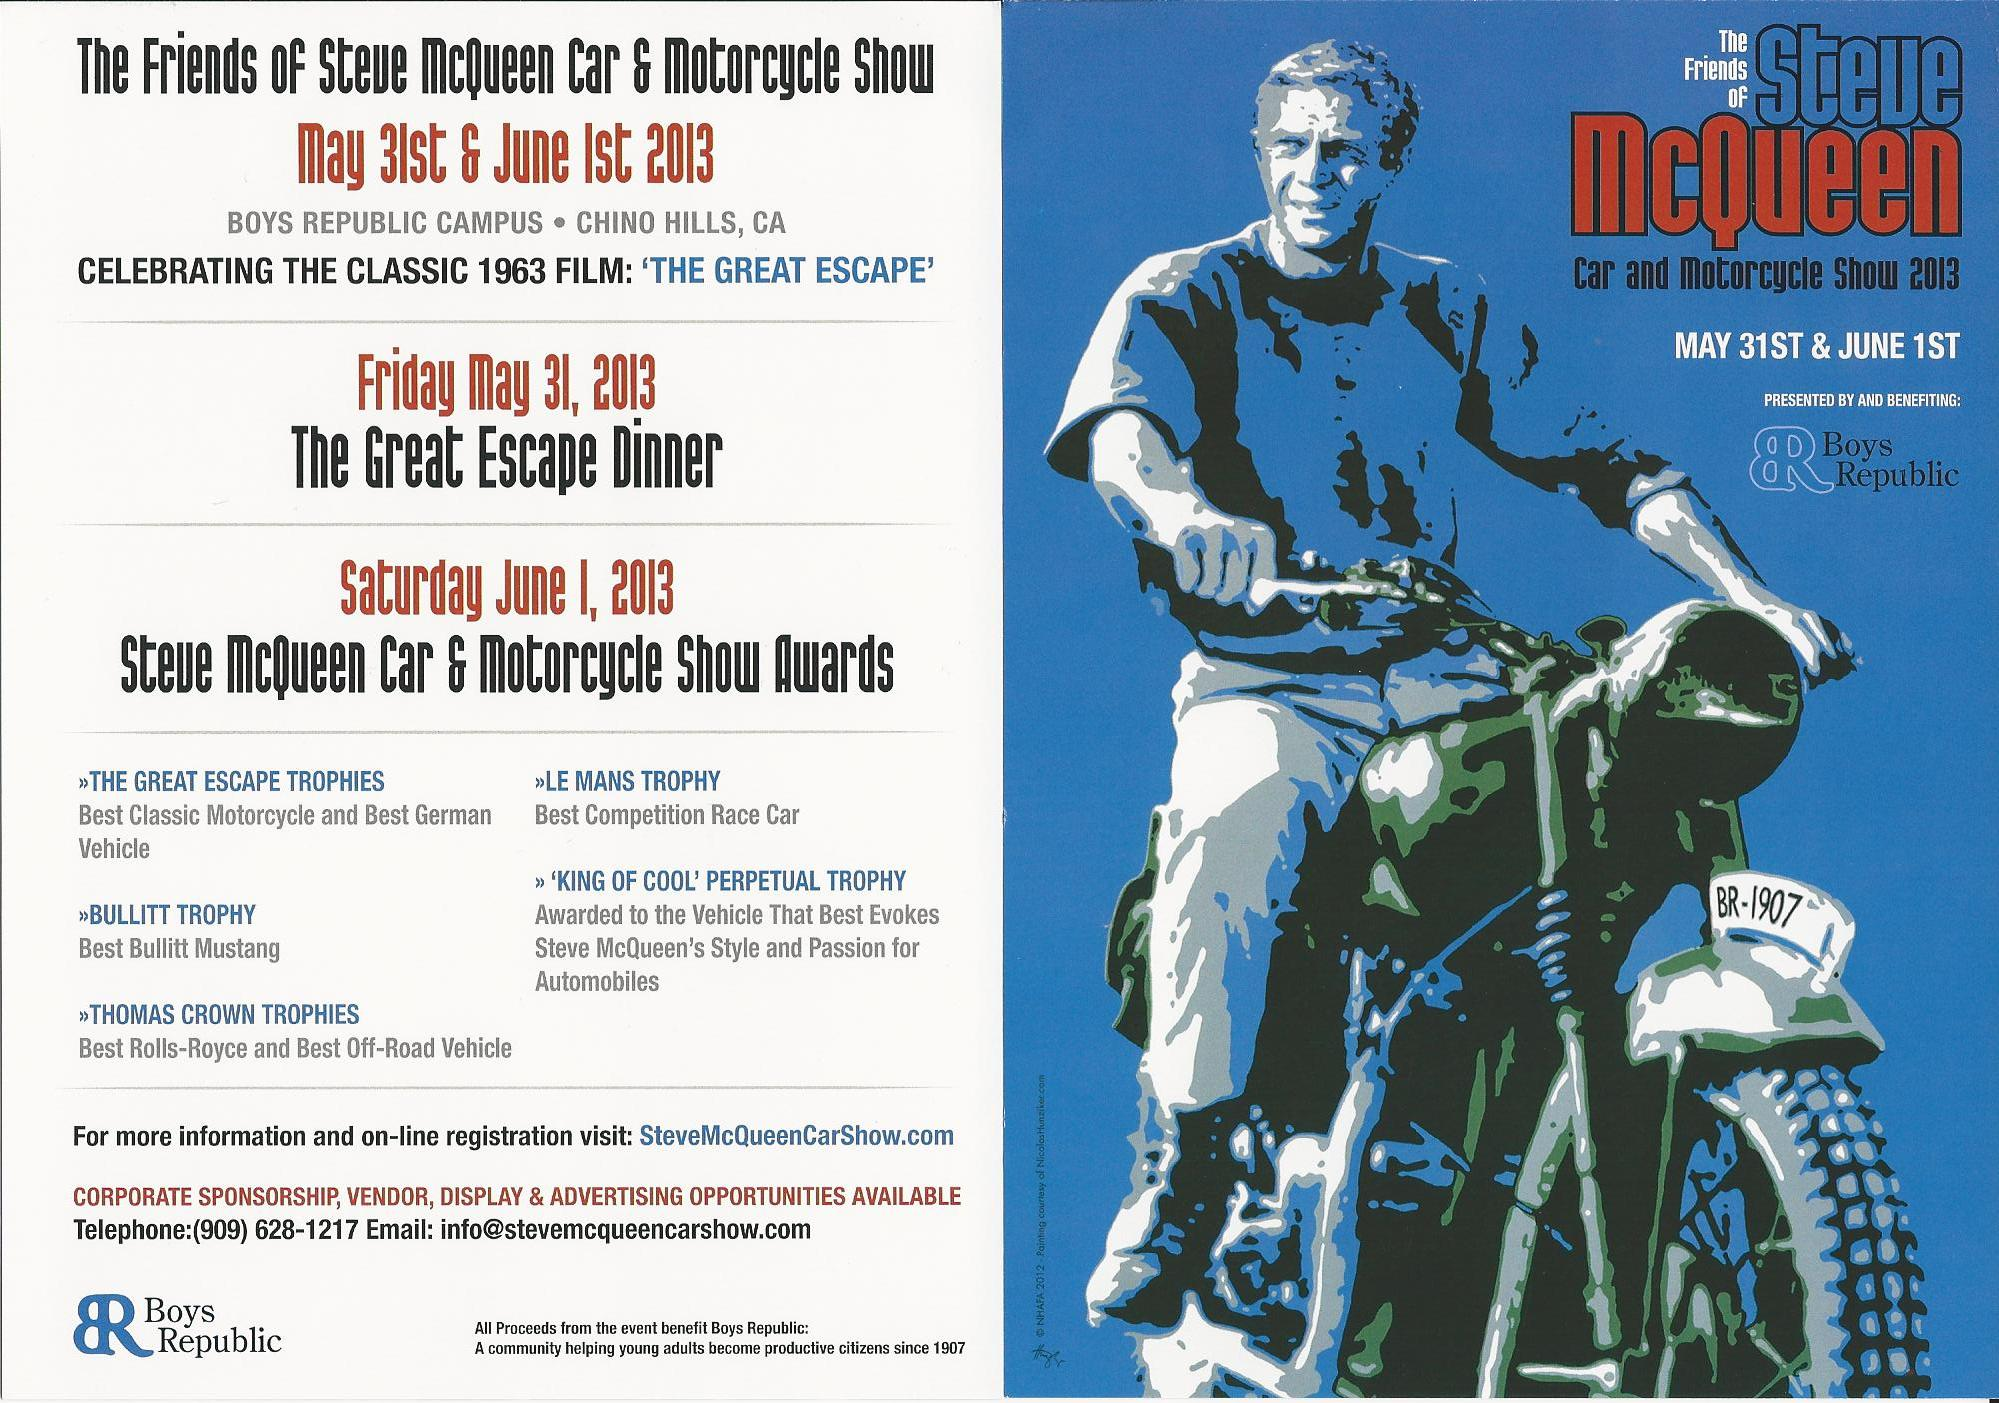 Plan for a Great Escape at the Sixth Annual Friends of Steve McQueen Car and Motorcycle Show